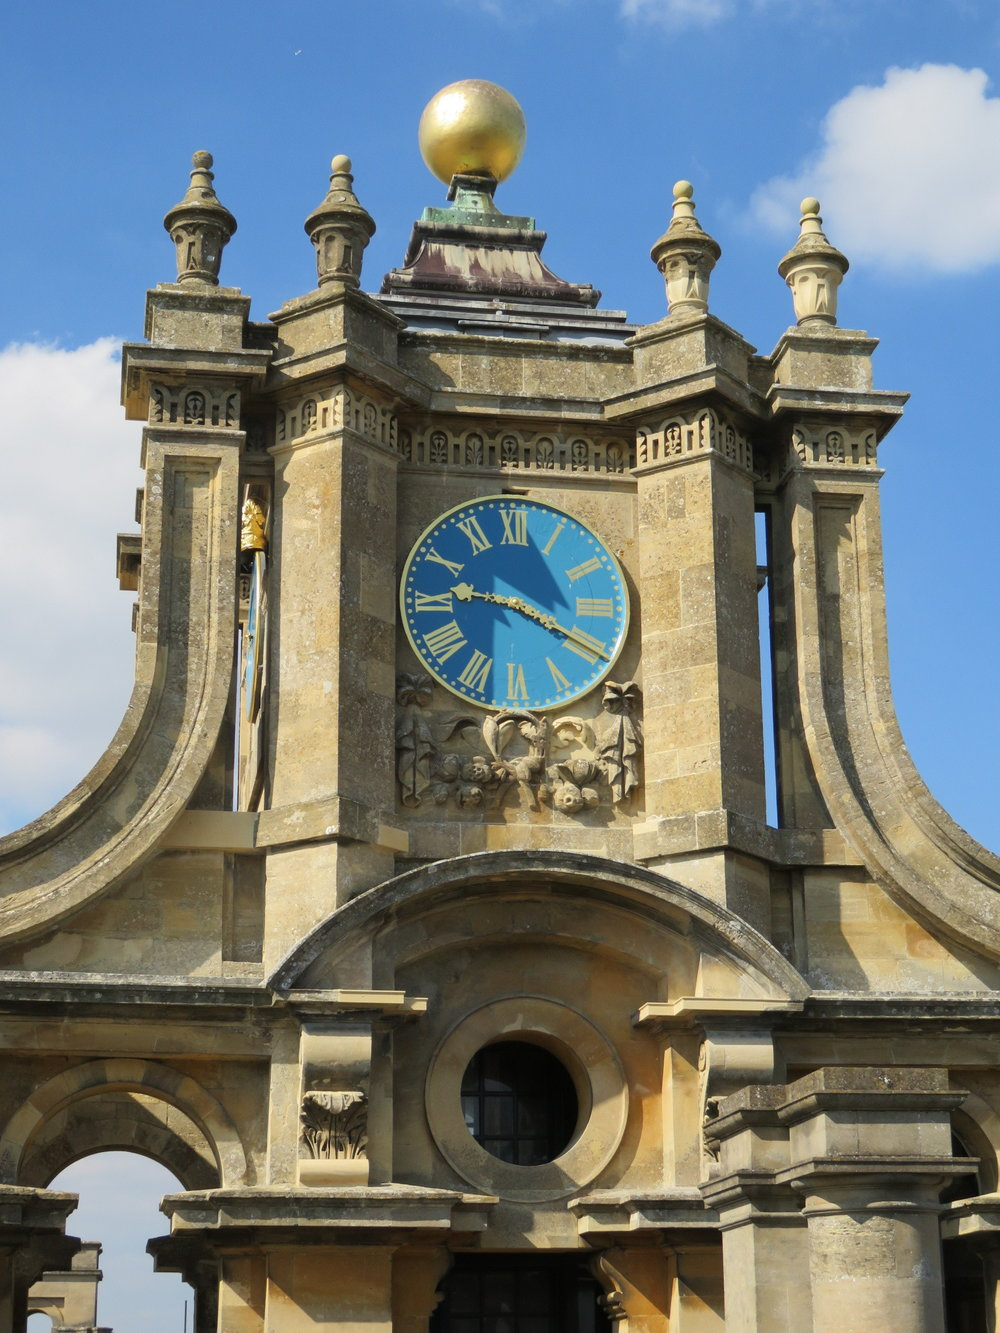 Blenheim Clock Tower